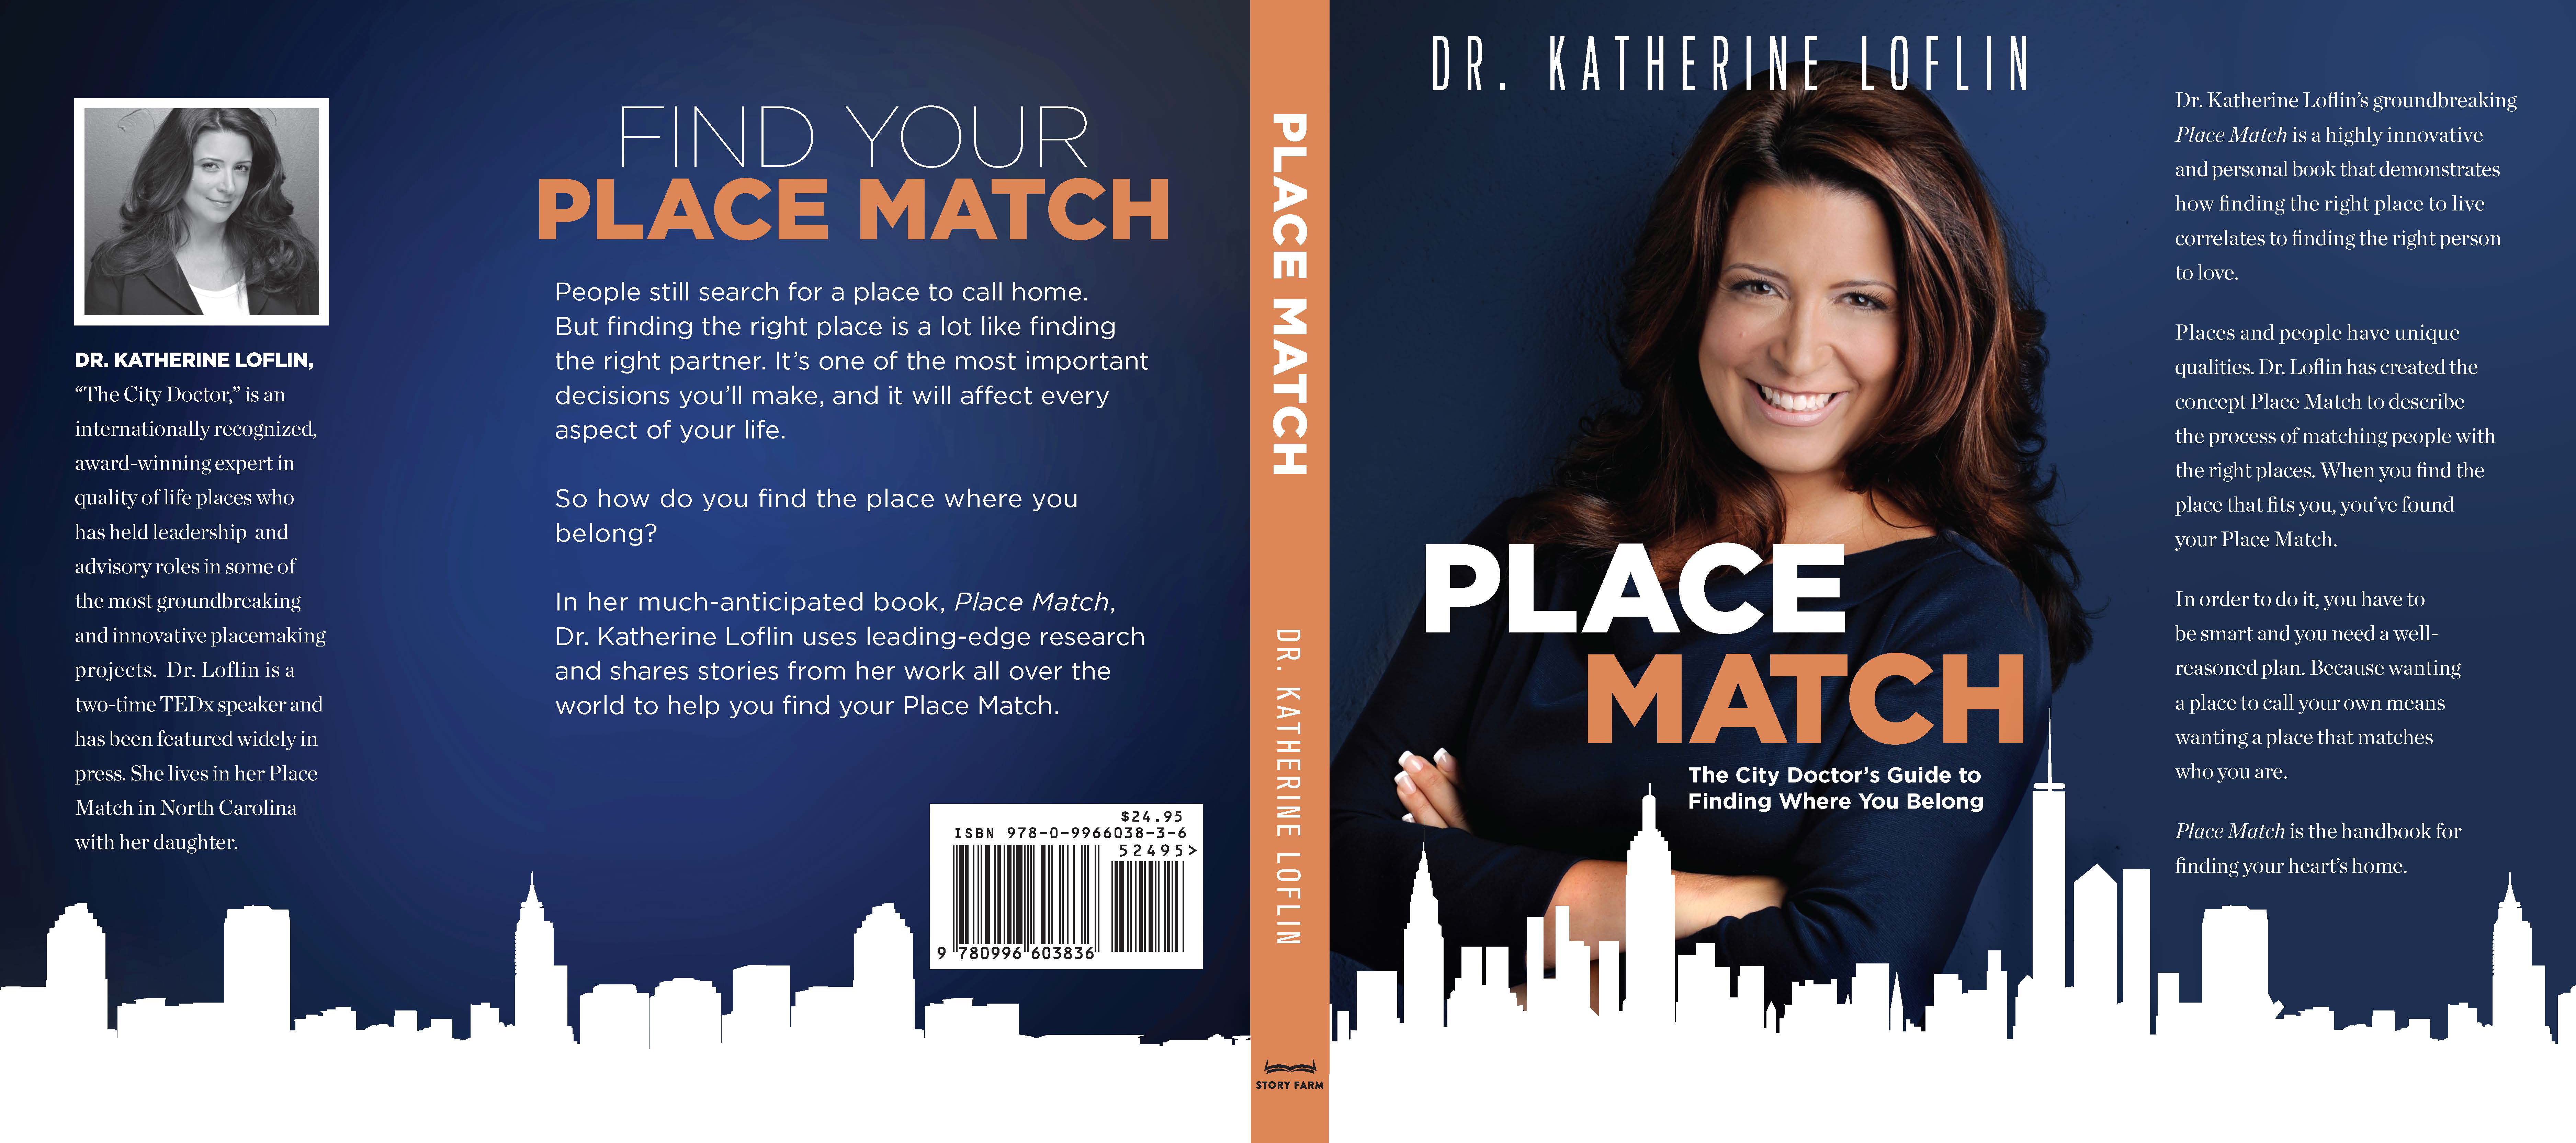 PLACEMATCH_COVER_CROPPED